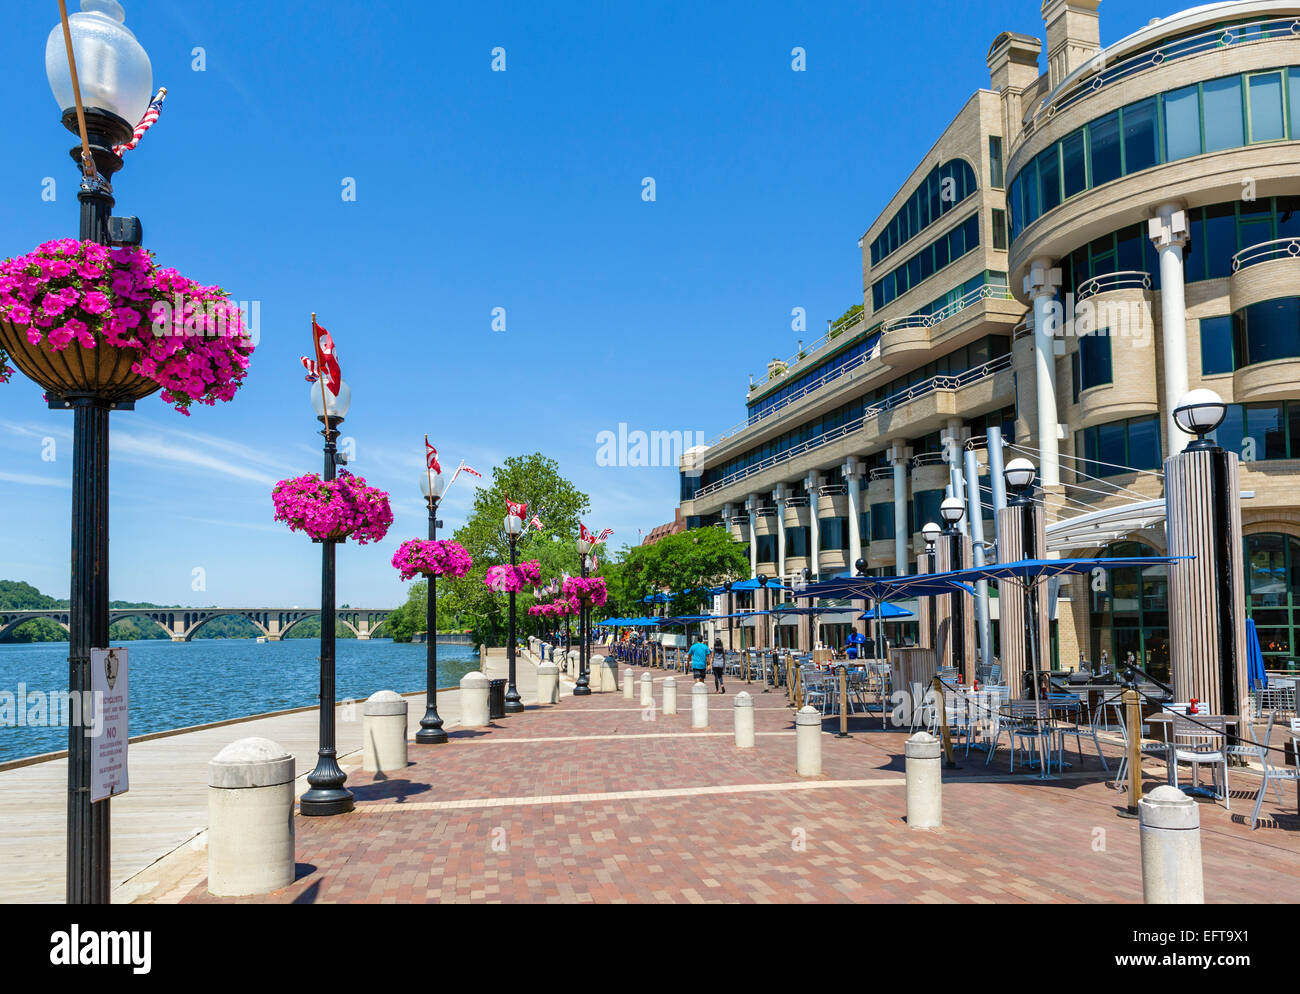 Waterfront cafes and restaurants in the Washington Harbor development, Georgetown, Washington DC, USA - Stock Image